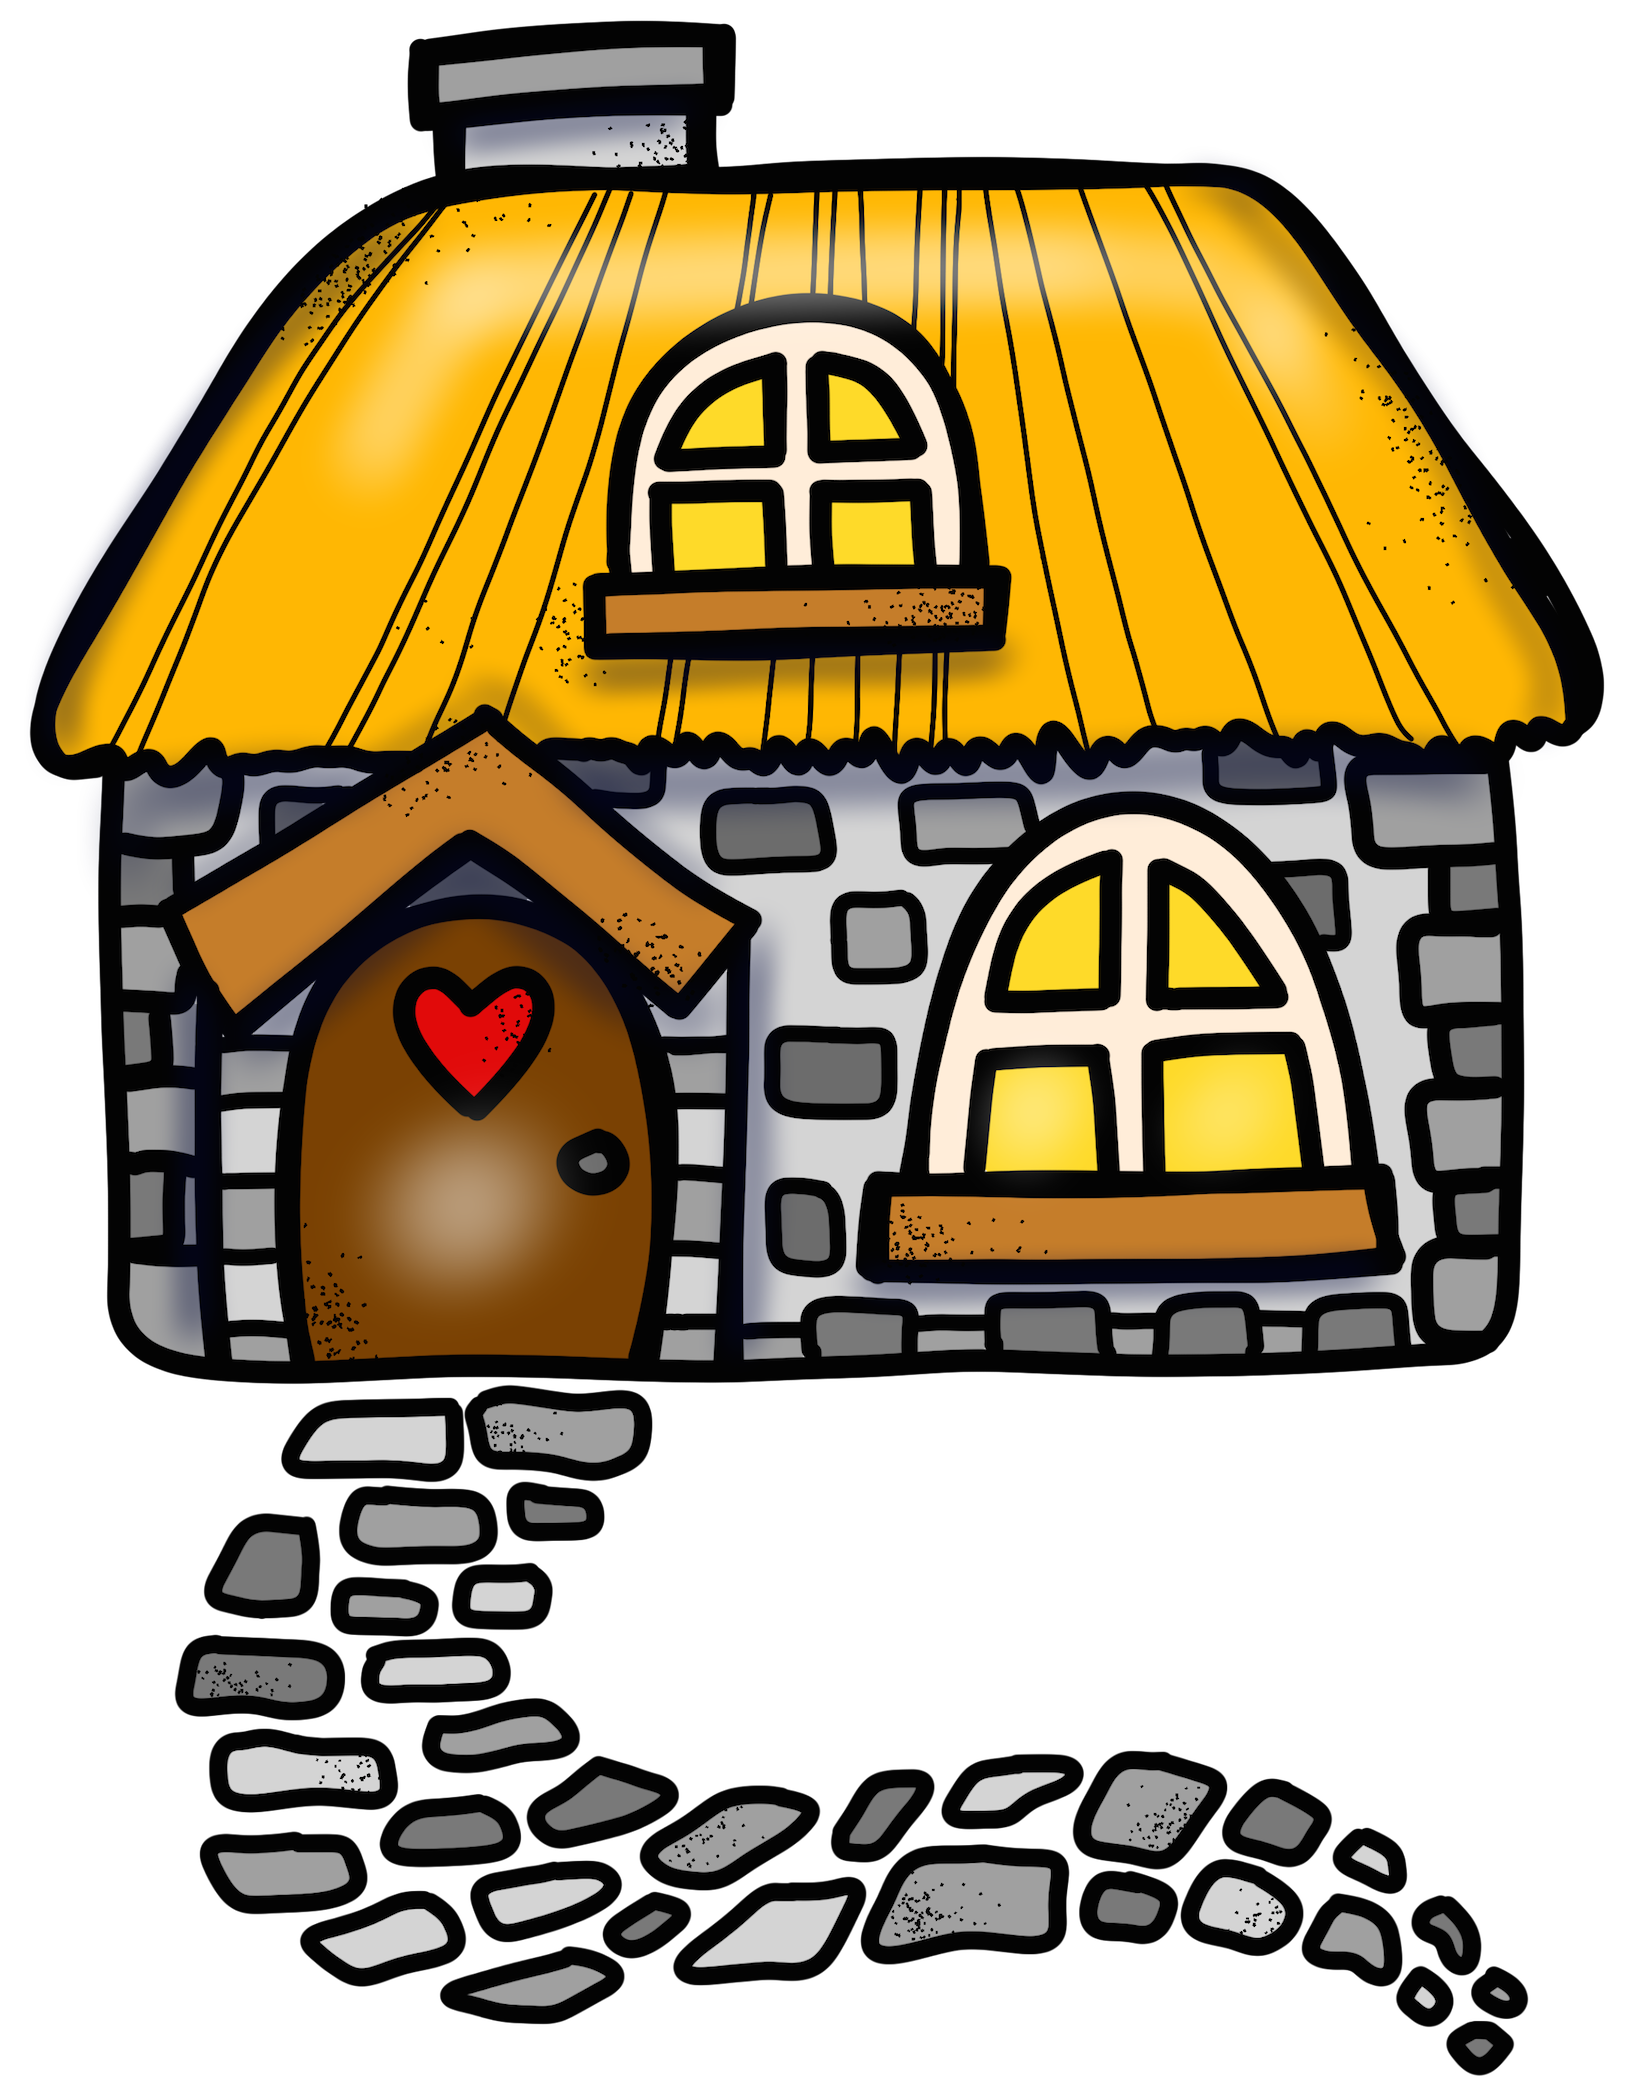 Fairy garden house png. Planet clipart melonheadz